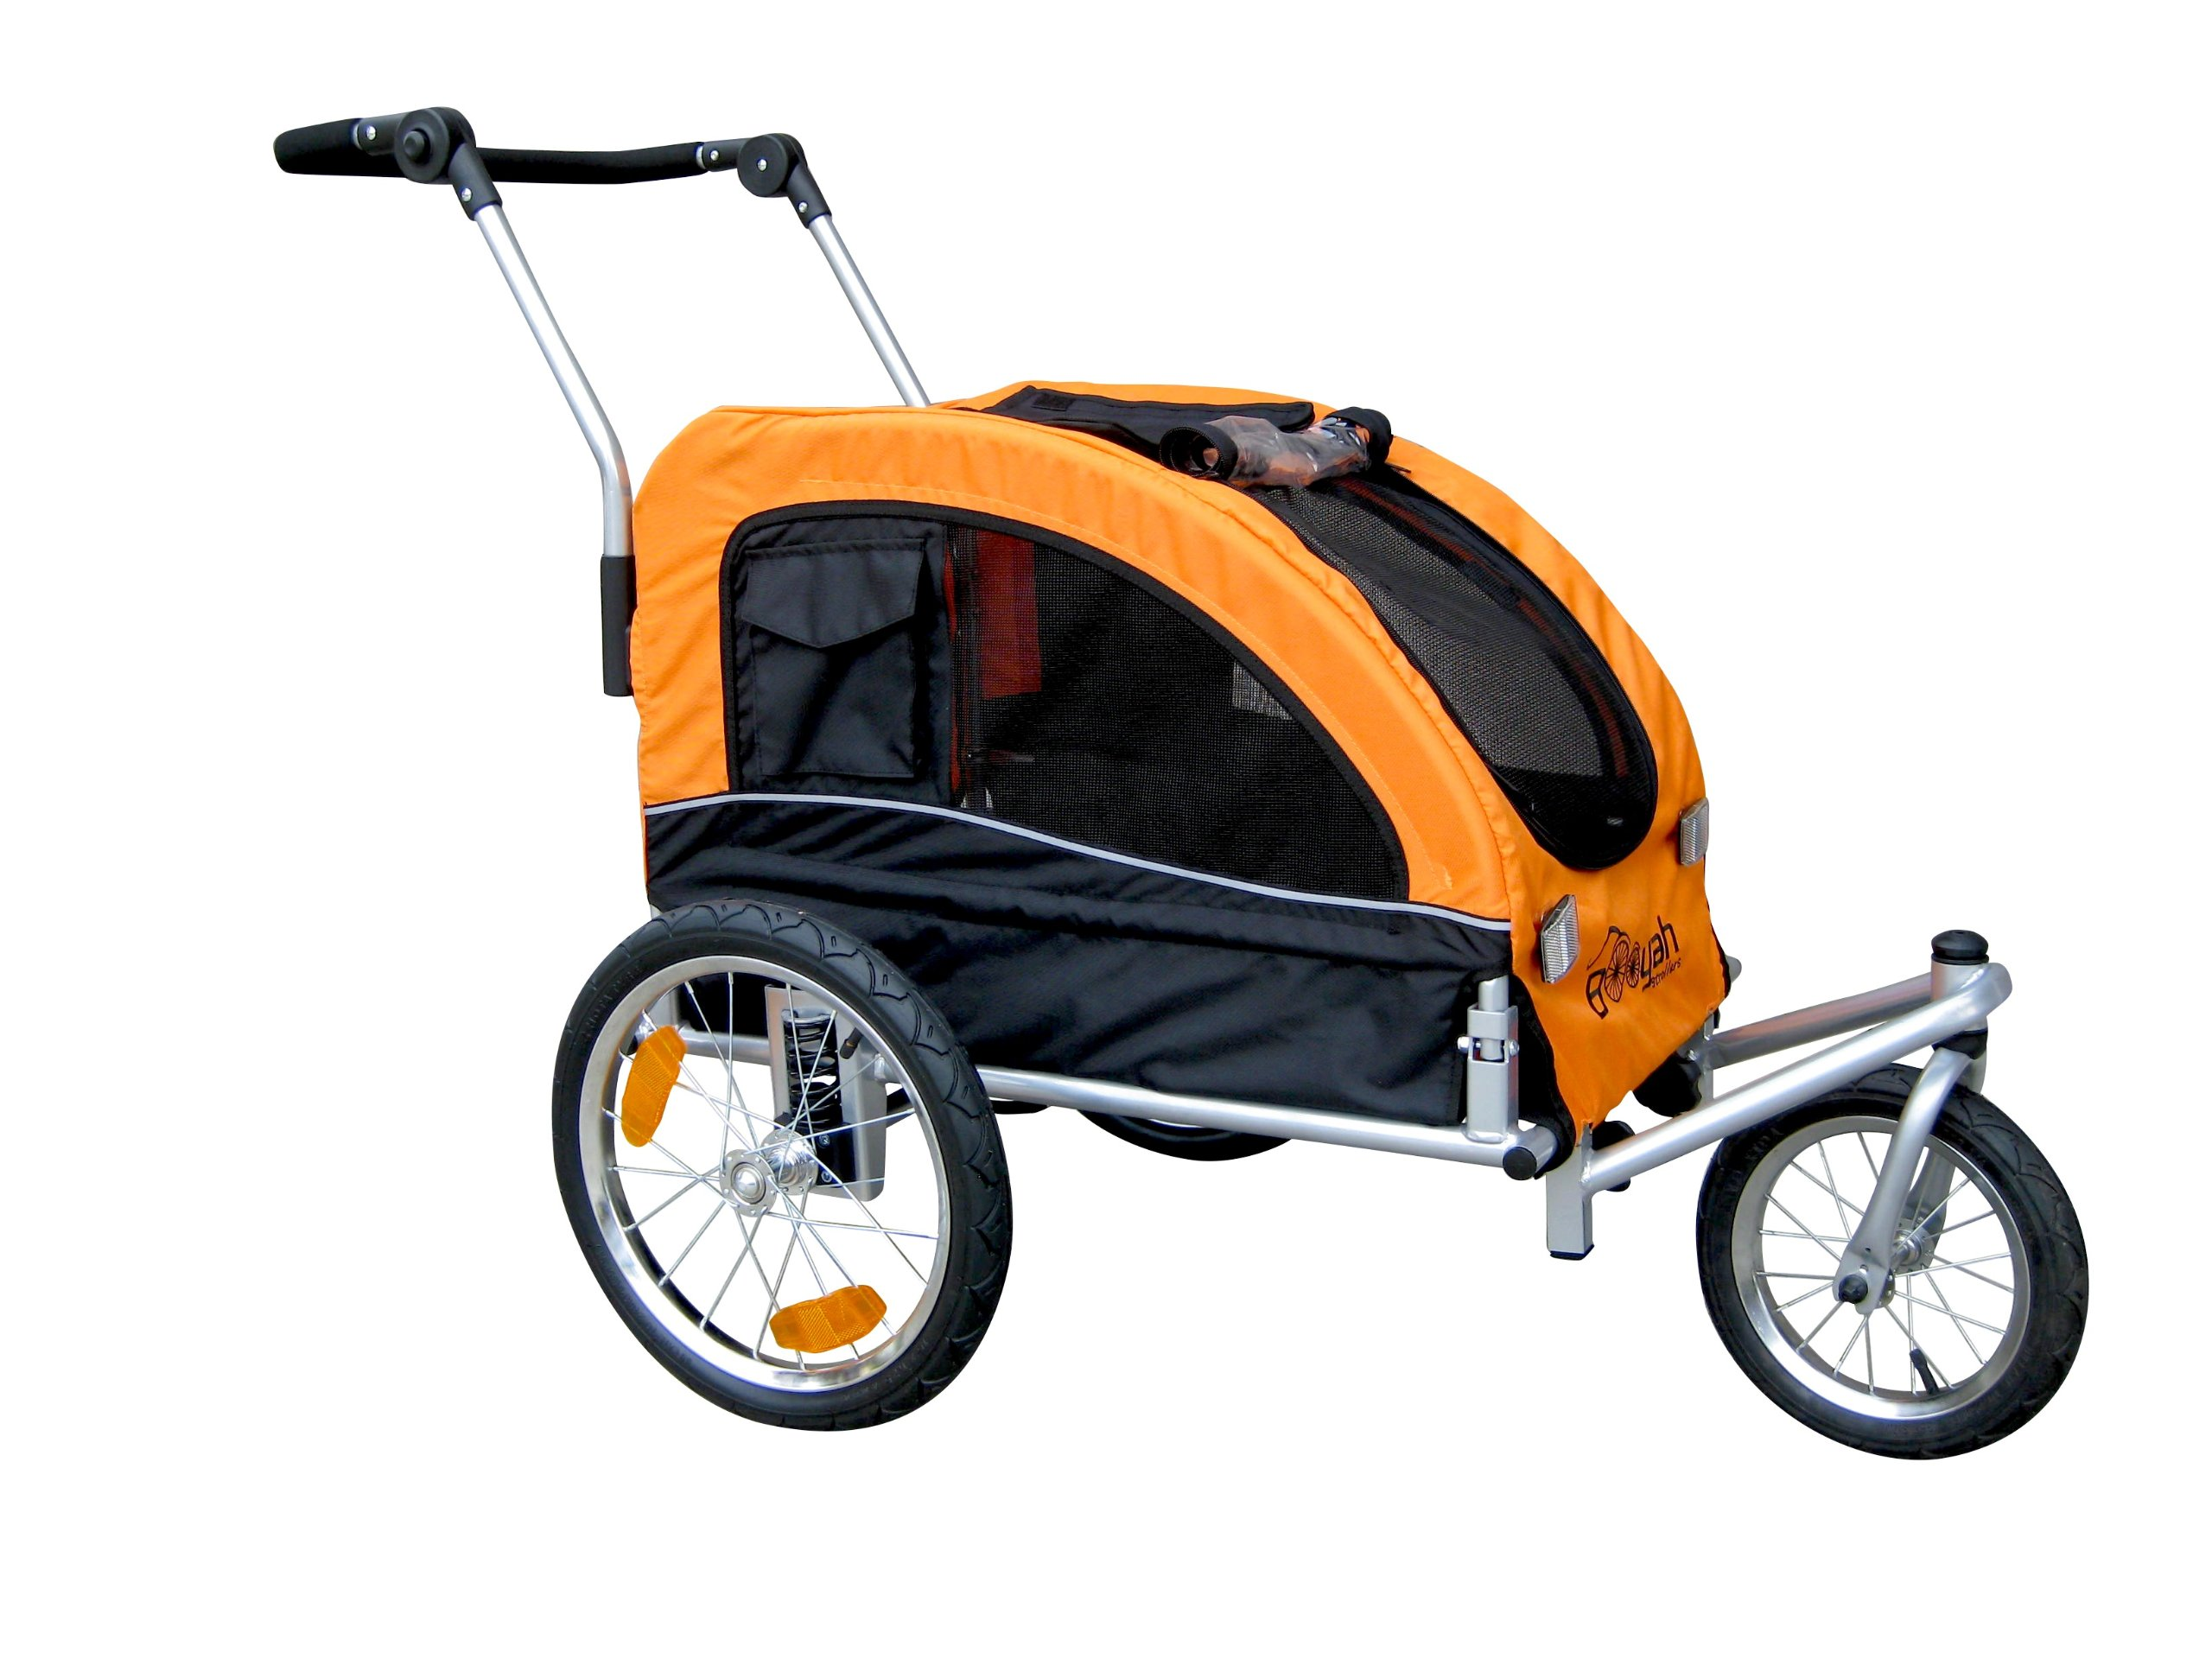 Booyah Medium Dog Stroller & Pet Bike Trailer with Suspension - Orange by Booyah Strollers